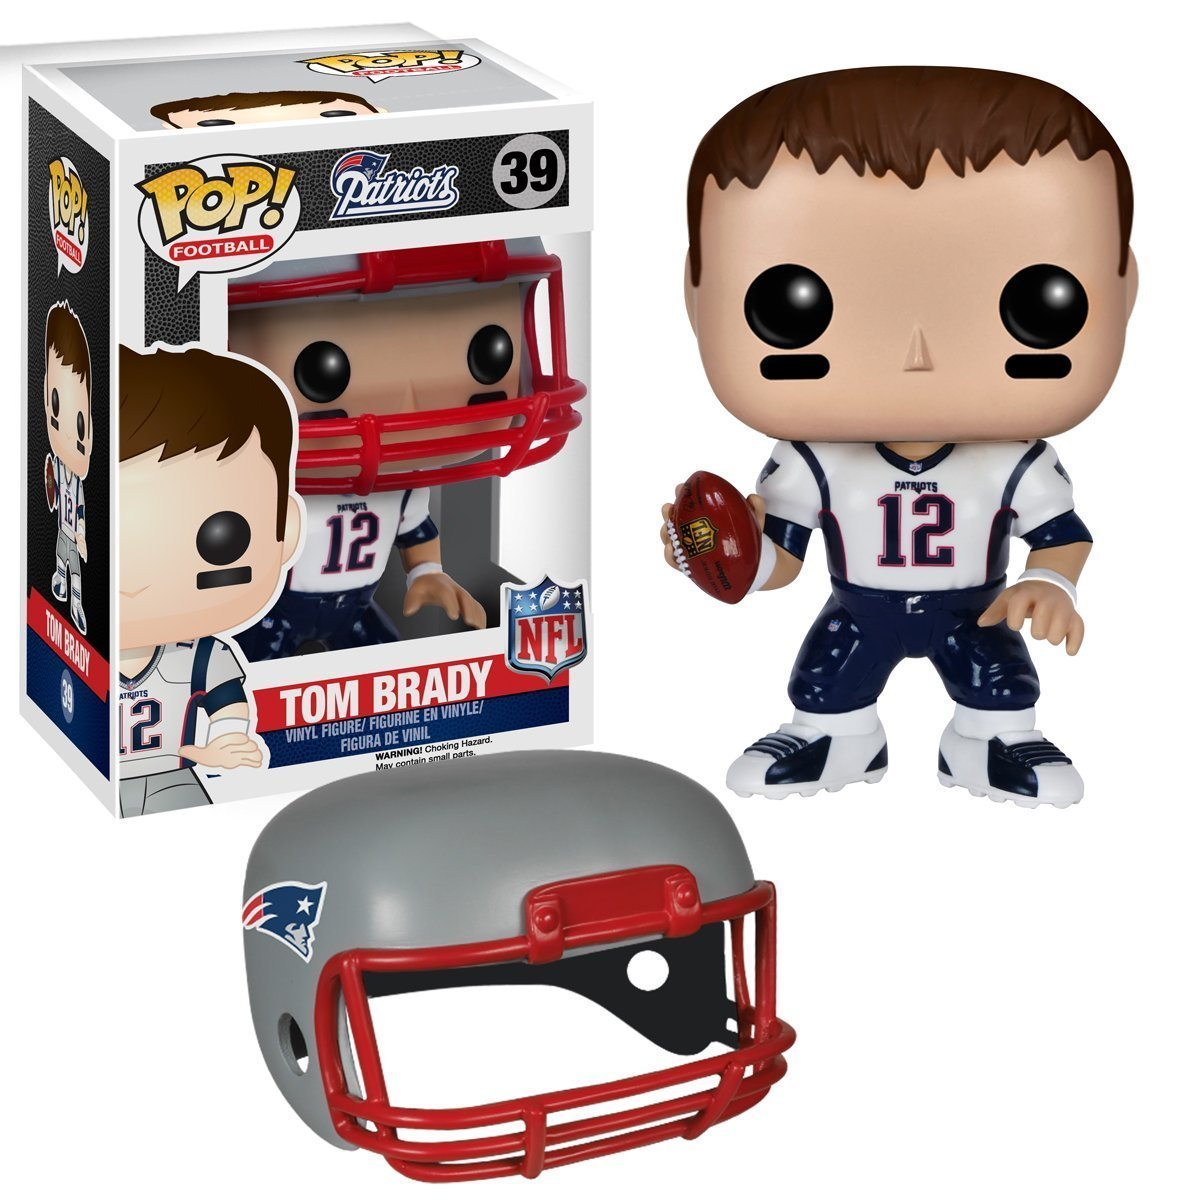 NFL Wave 2 Funko POP Vinyl Figure: Tom Brady 7565